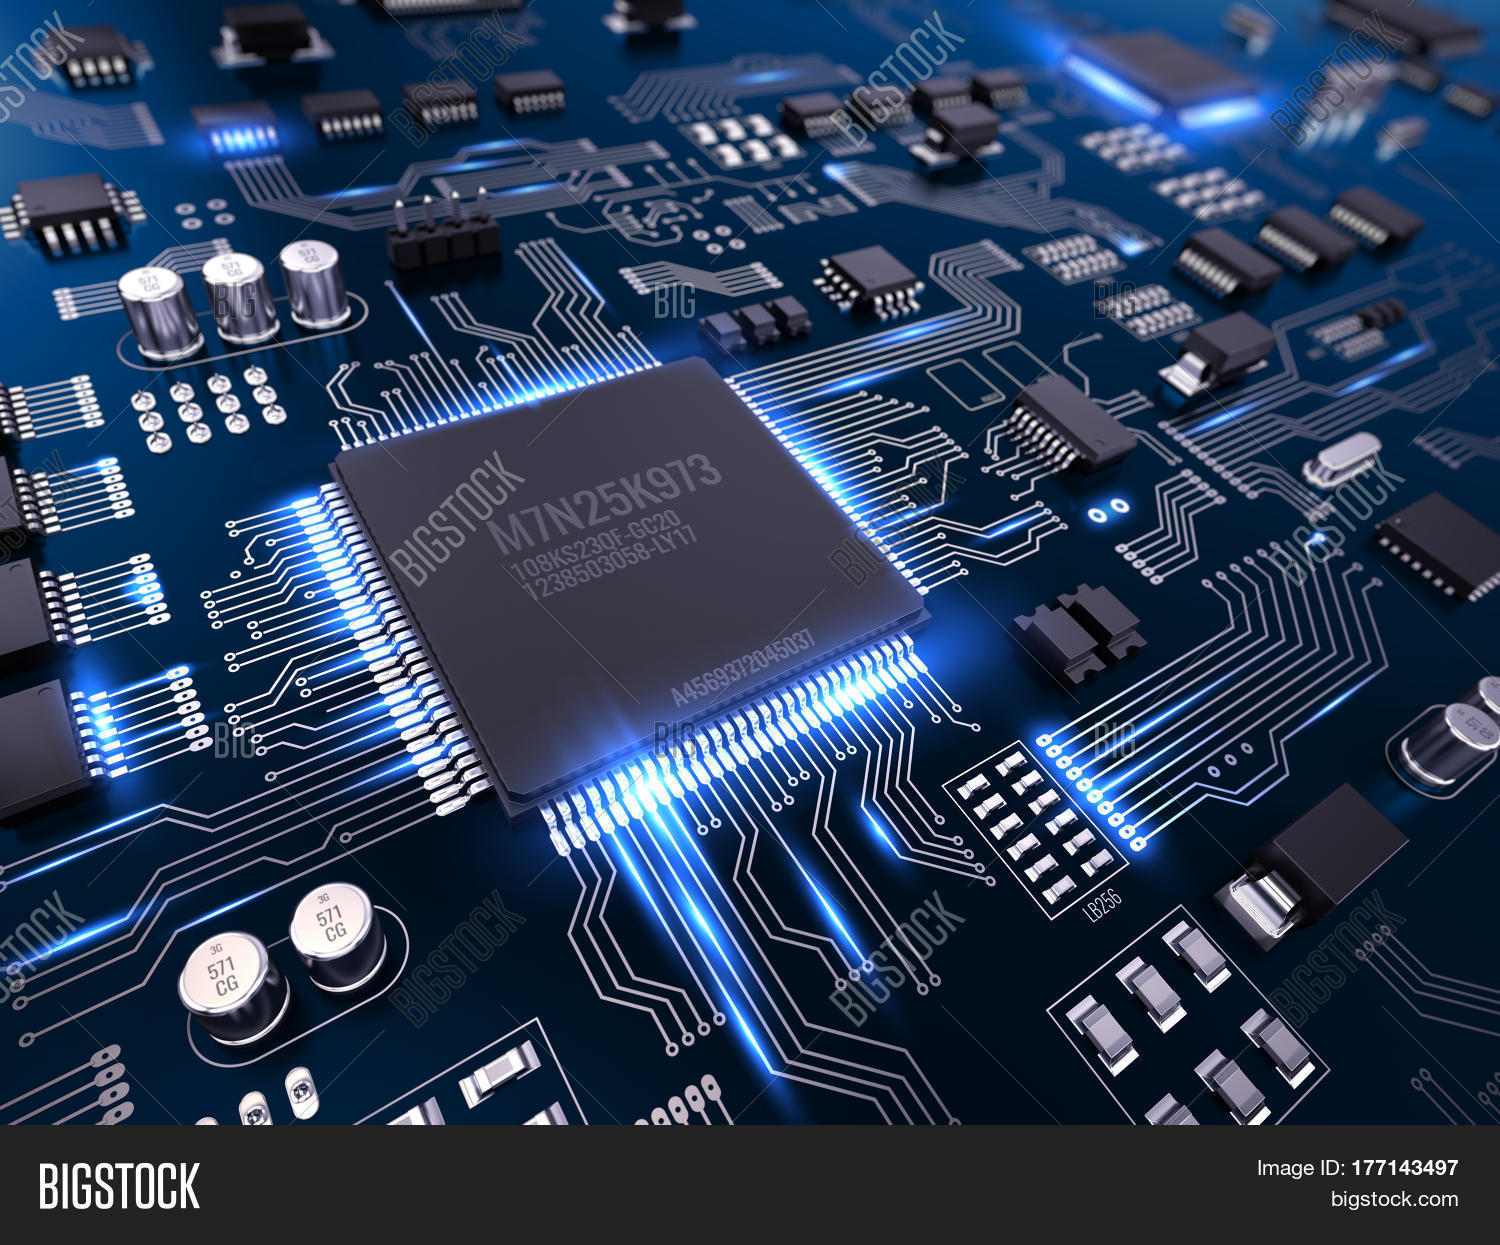 High Tech Electronic Image Photo Free Trial Bigstock Circuit Board Printed Pcb With Processor And Microchips 3d Illustration